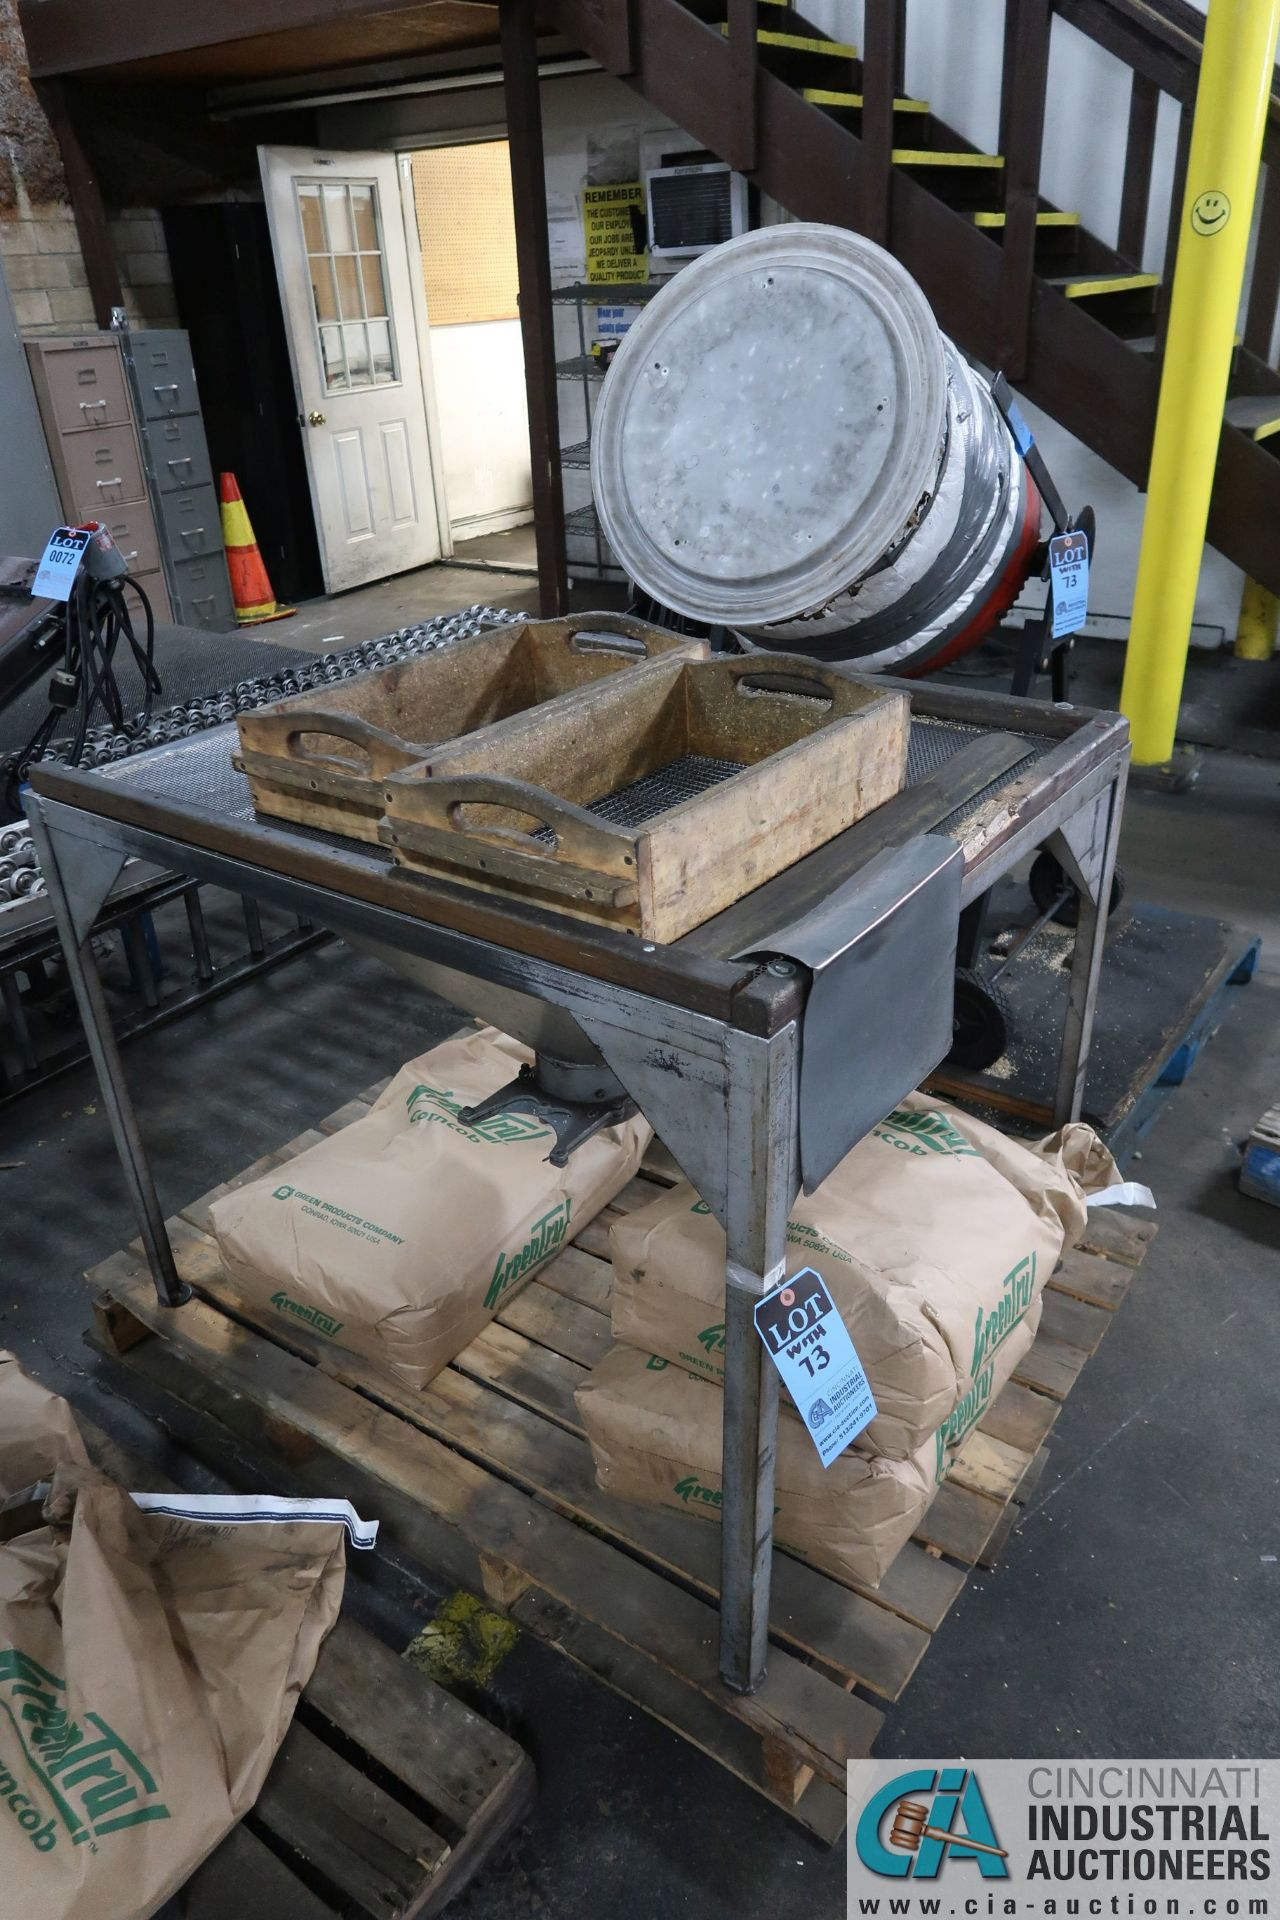 PORTABLE ELECTRIC CEMENT MIXERS CONVERTED TO CORN COB MEDIA FINISHING MACHINE WITH SIFTING TABLE AND - Image 4 of 6